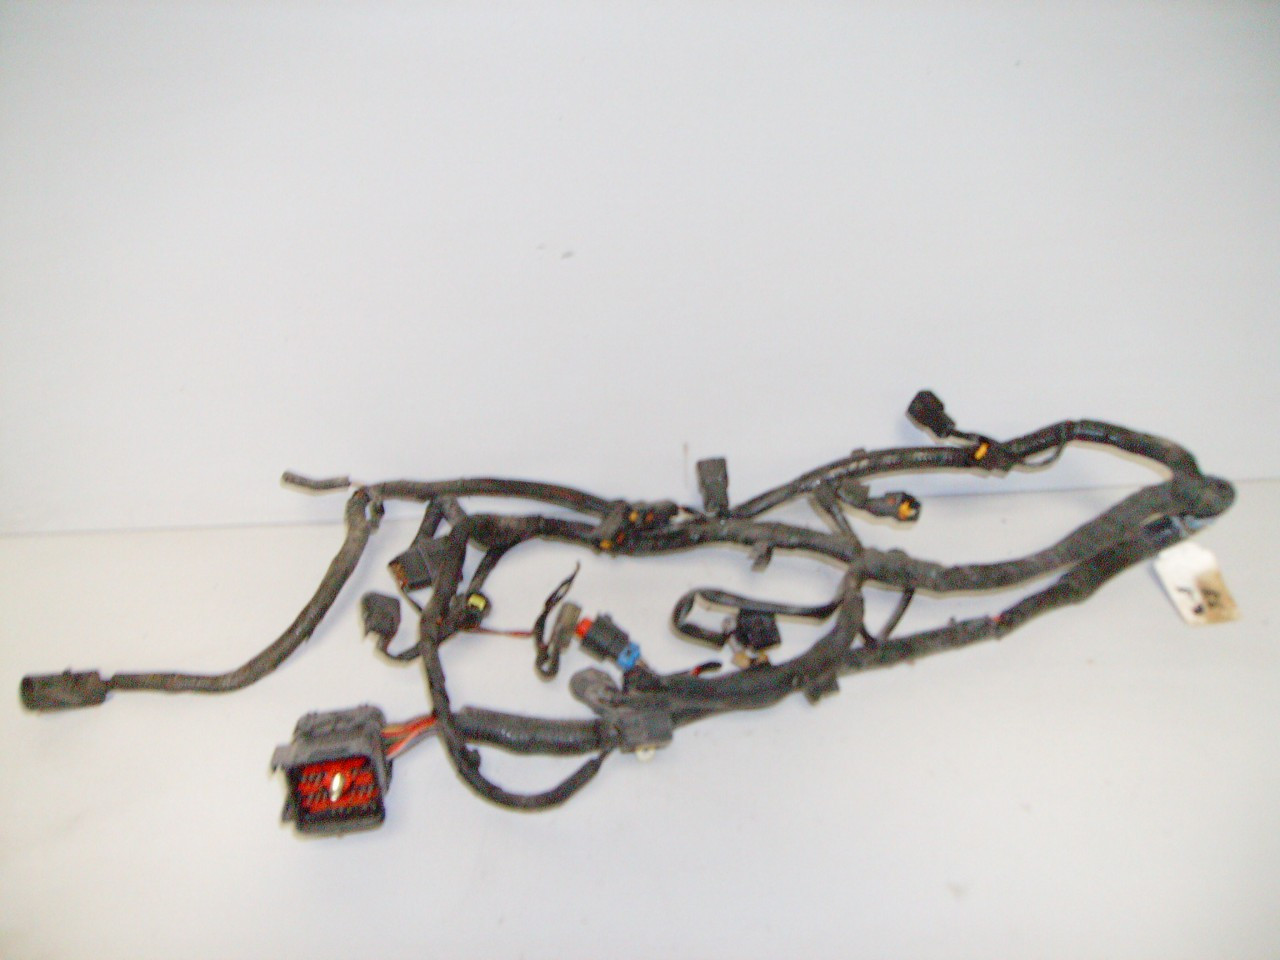 hight resolution of 1996 1998 ford mustang 3 8 engine injection wire harness lx v6 image 1